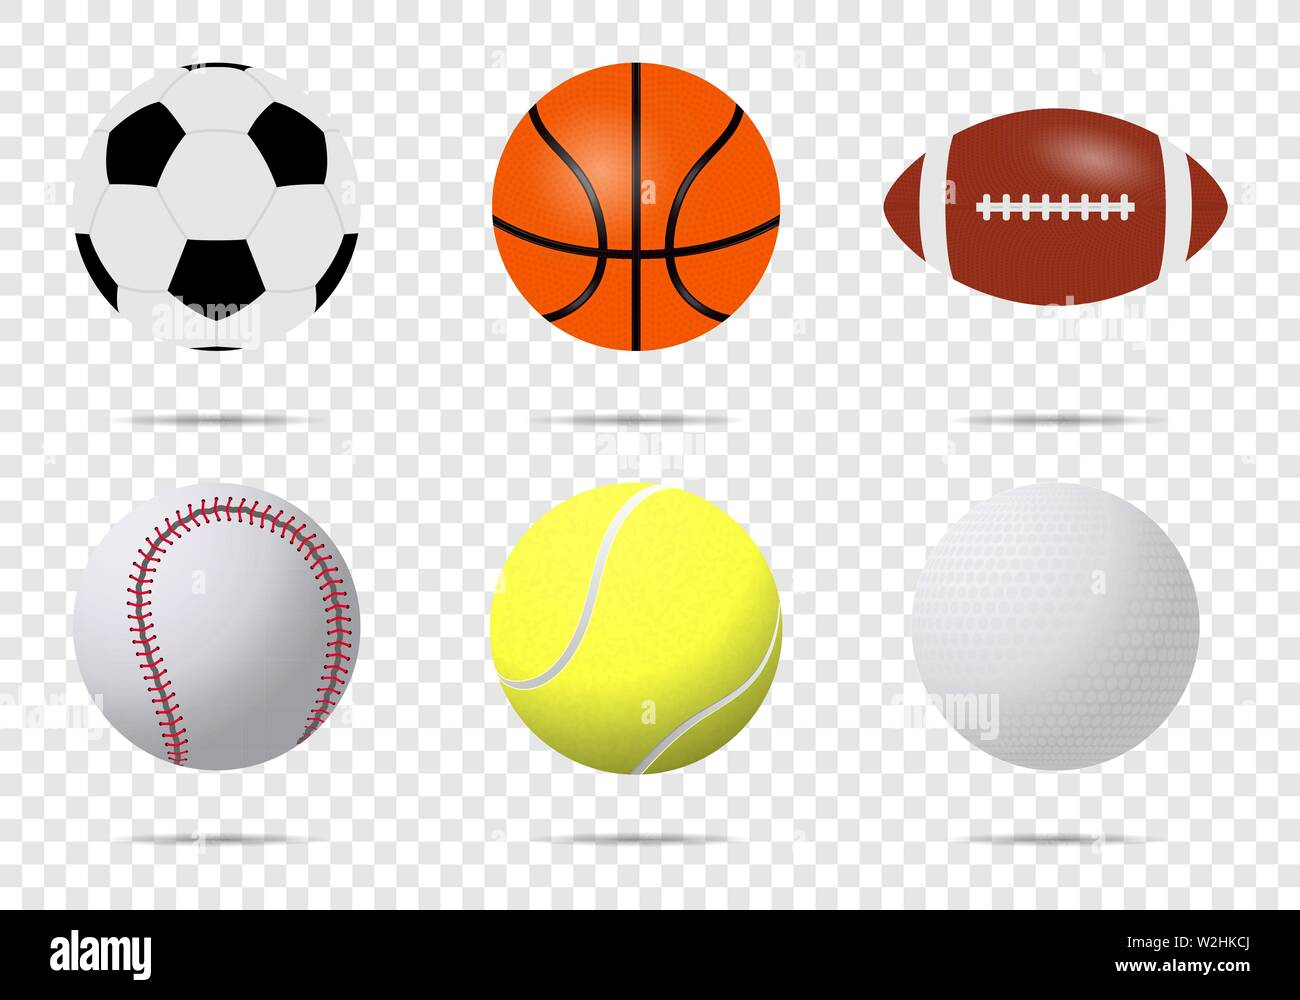 Realistic Sports Balls Vector Big Set Isolated On Transparent Background Illustration Of Golf And Baseball Football Game And Tennis Eps 10 Stock Vector Image Art Alamy